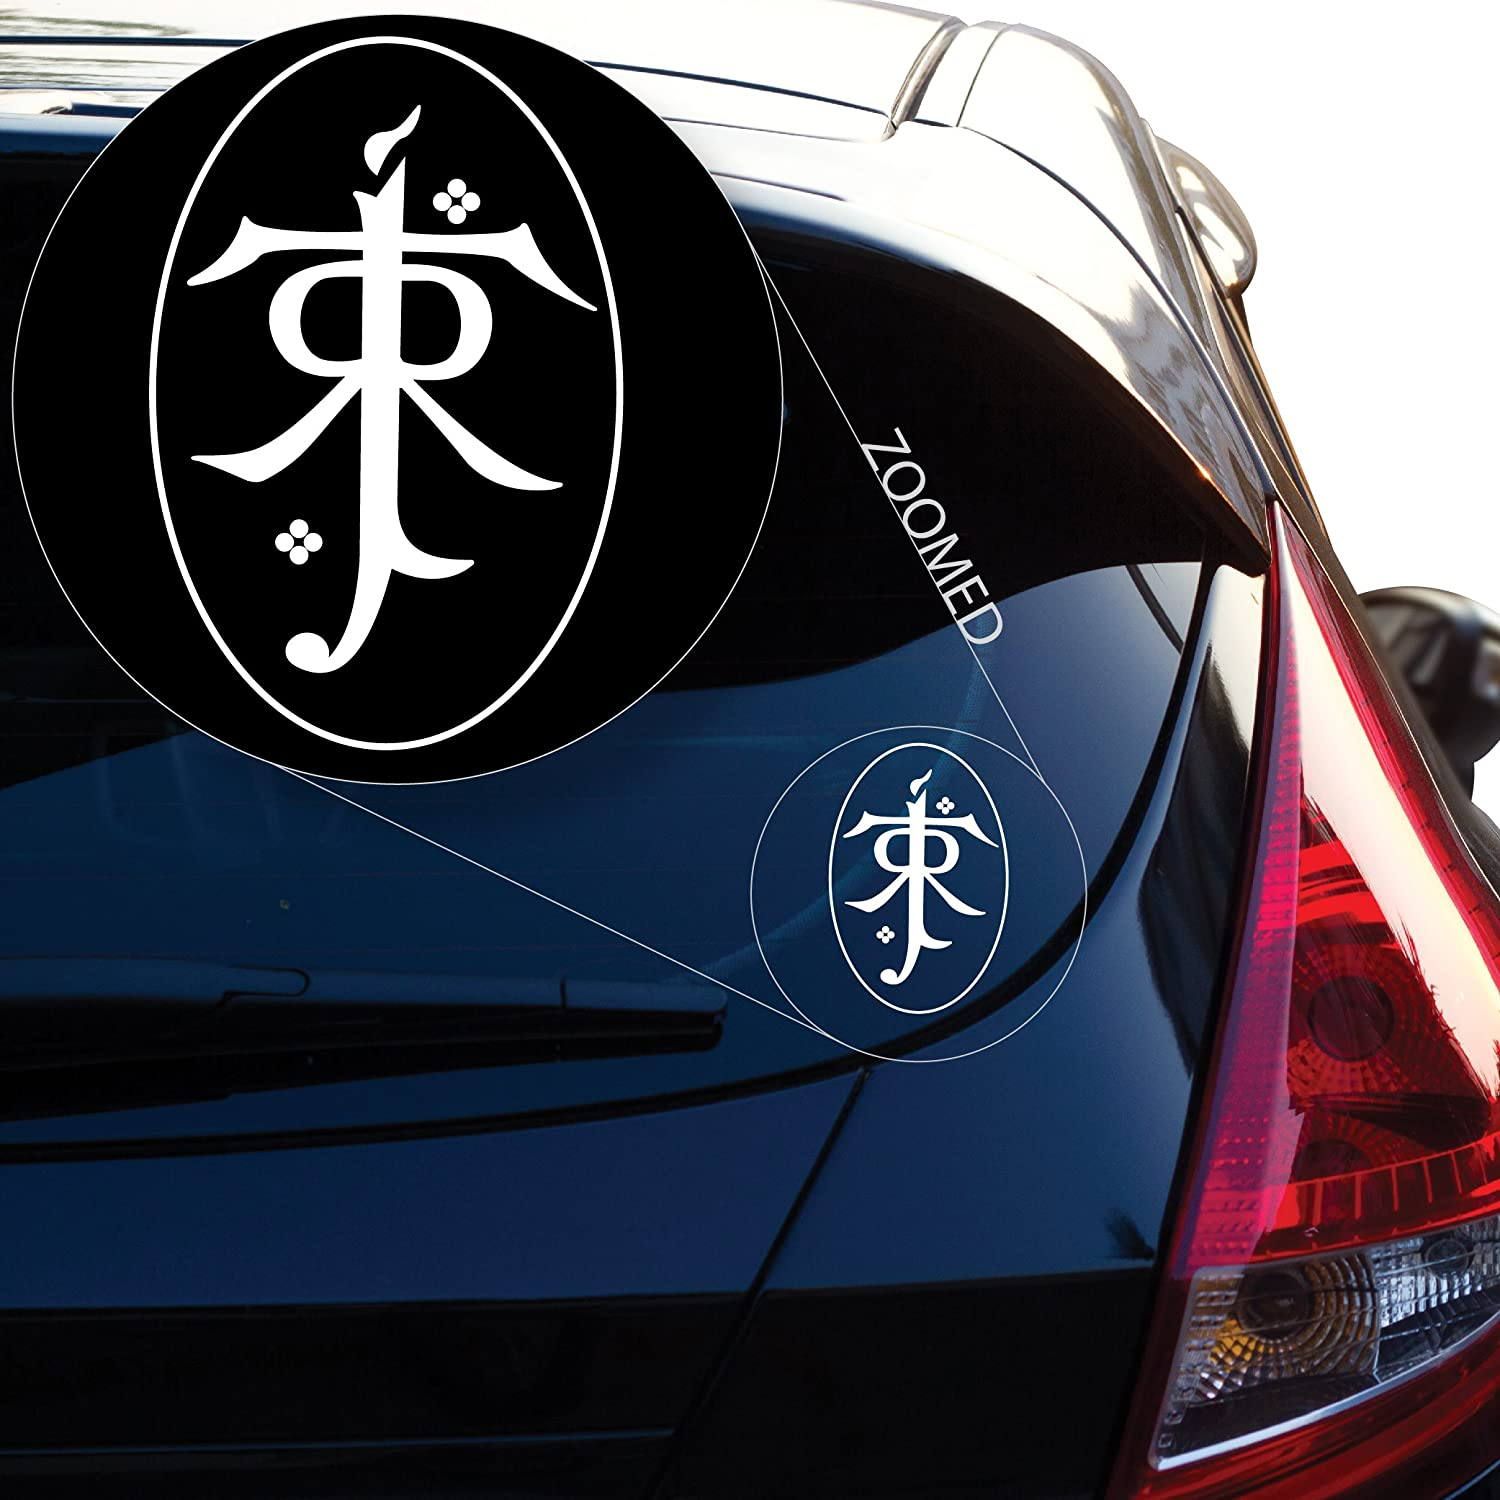 """Yoonek Graphics Lord of The Rings Tolkien Decal Sticker for Car Window, Laptop, Motorcycle, Walls, Mirror and More. # 533 (4"""" x 2.7"""", White)"""